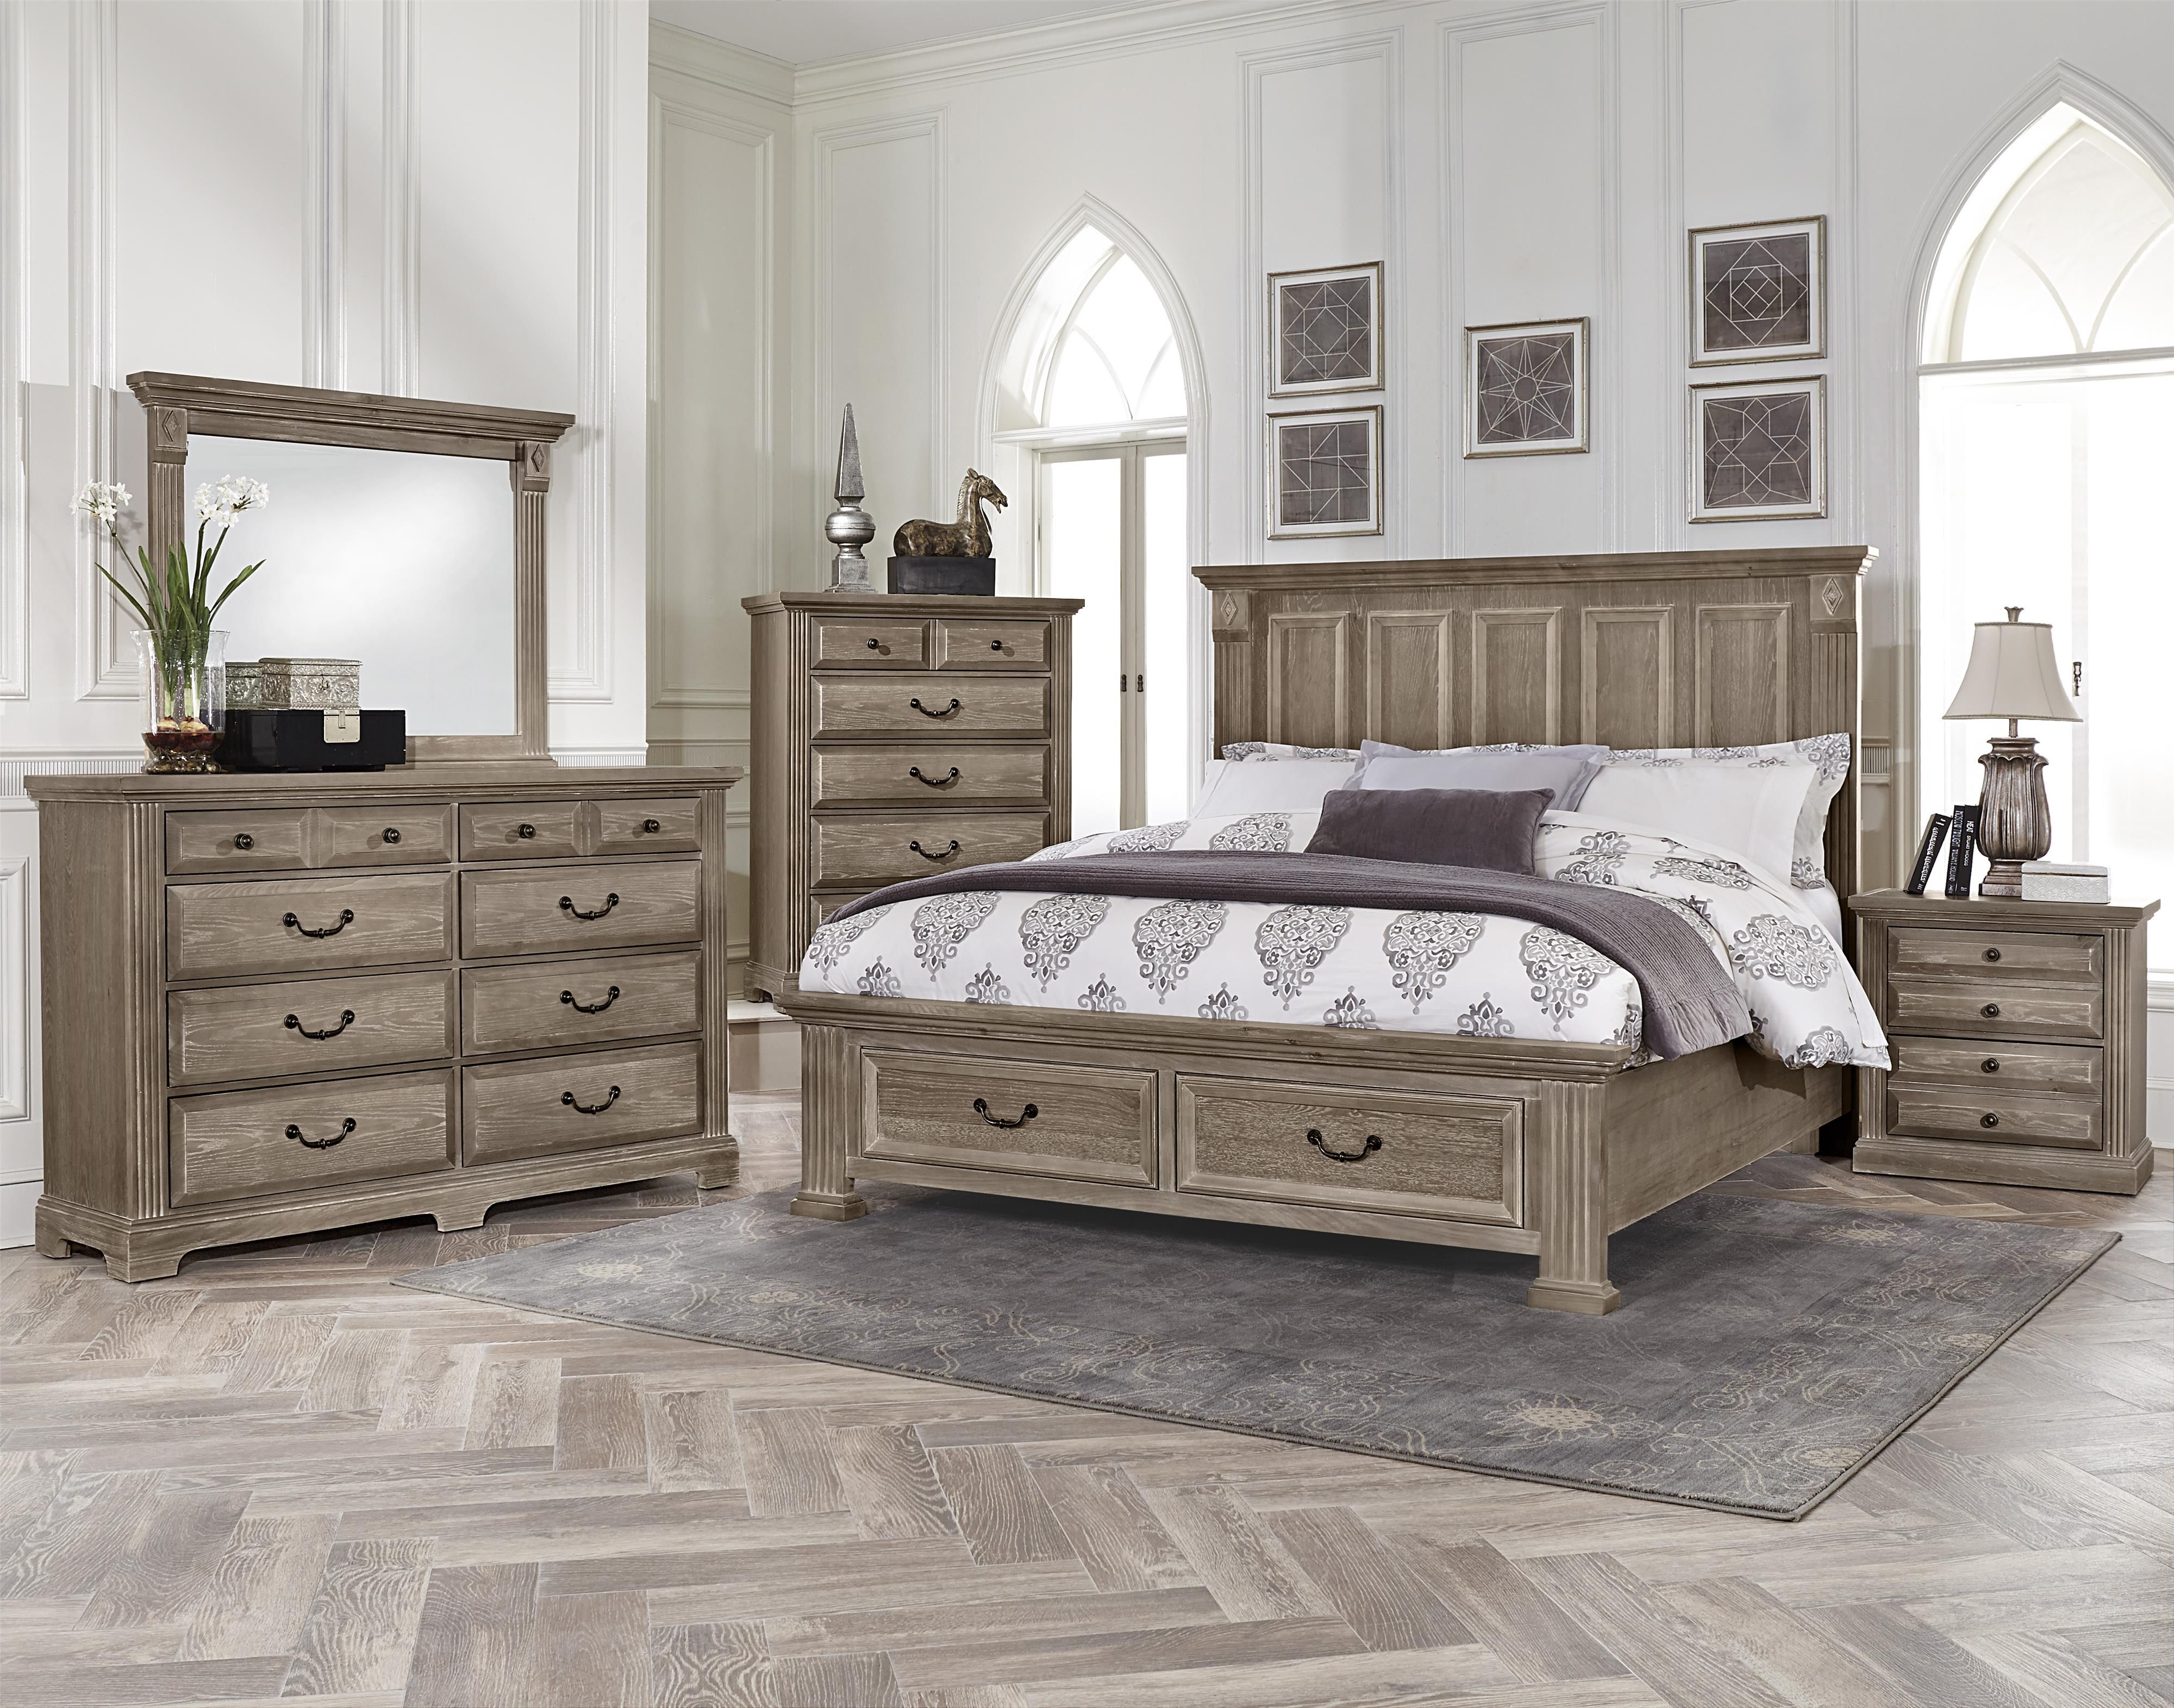 Woodlands King Bedroom Group by Vaughan Bassett | The new crib ... for Driftwood Color Furniture  174mzq